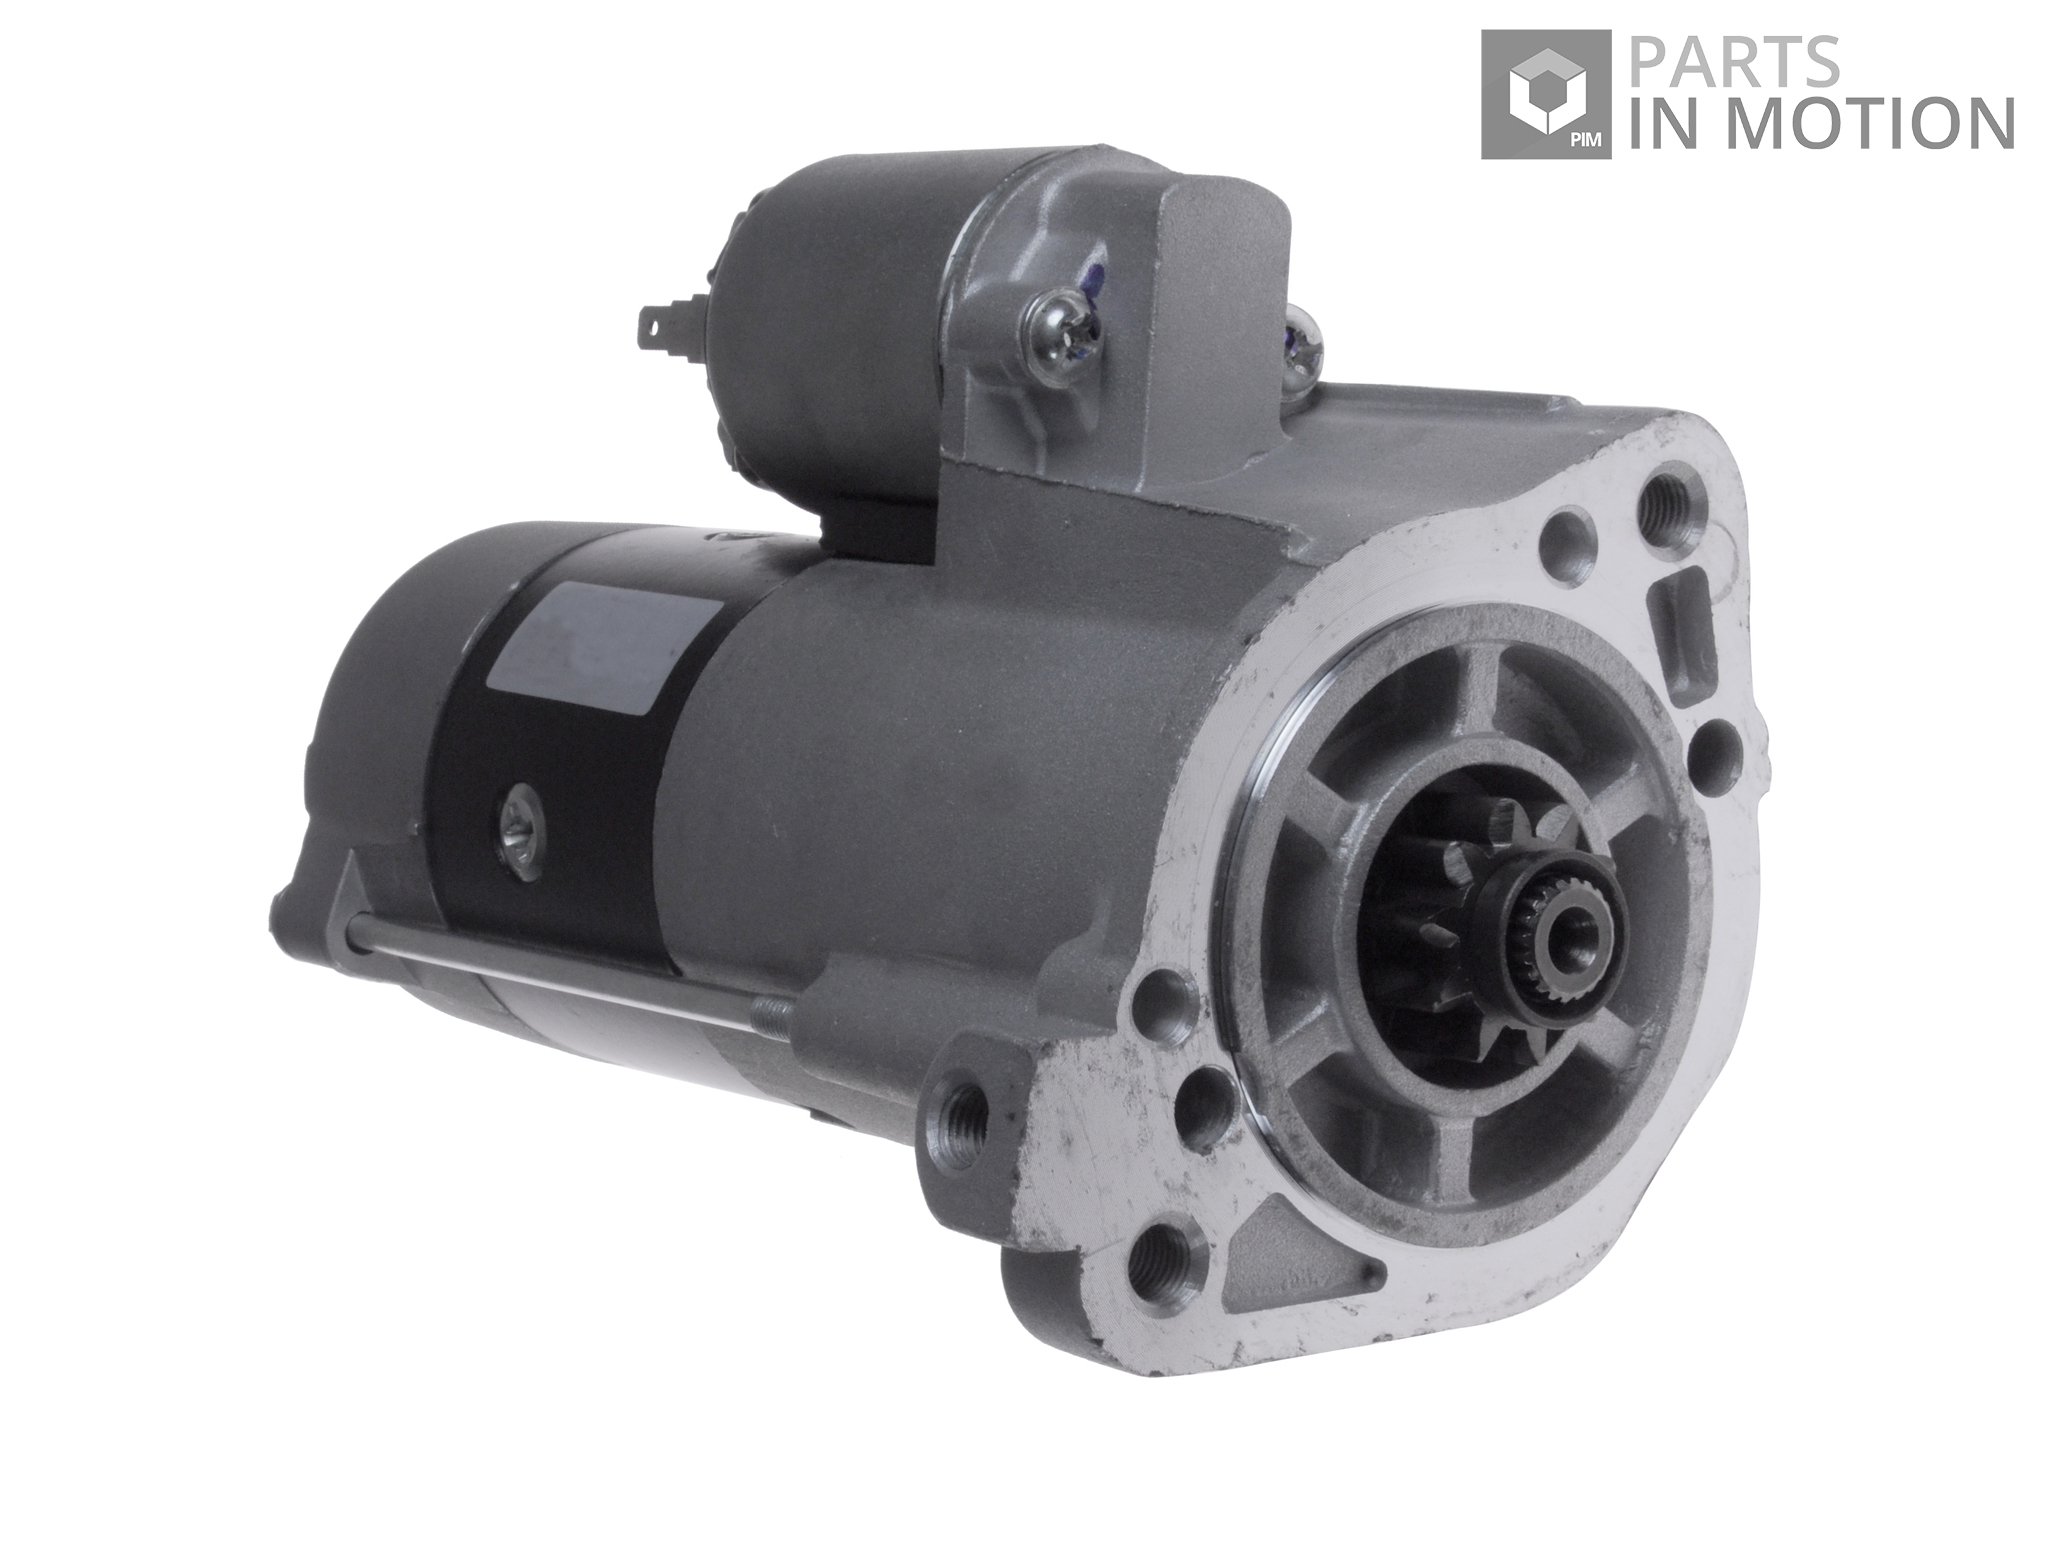 Starter Motor fits MITSUBISHI CANTER 2.8D 96 to 01 ADL 1810A050 ...